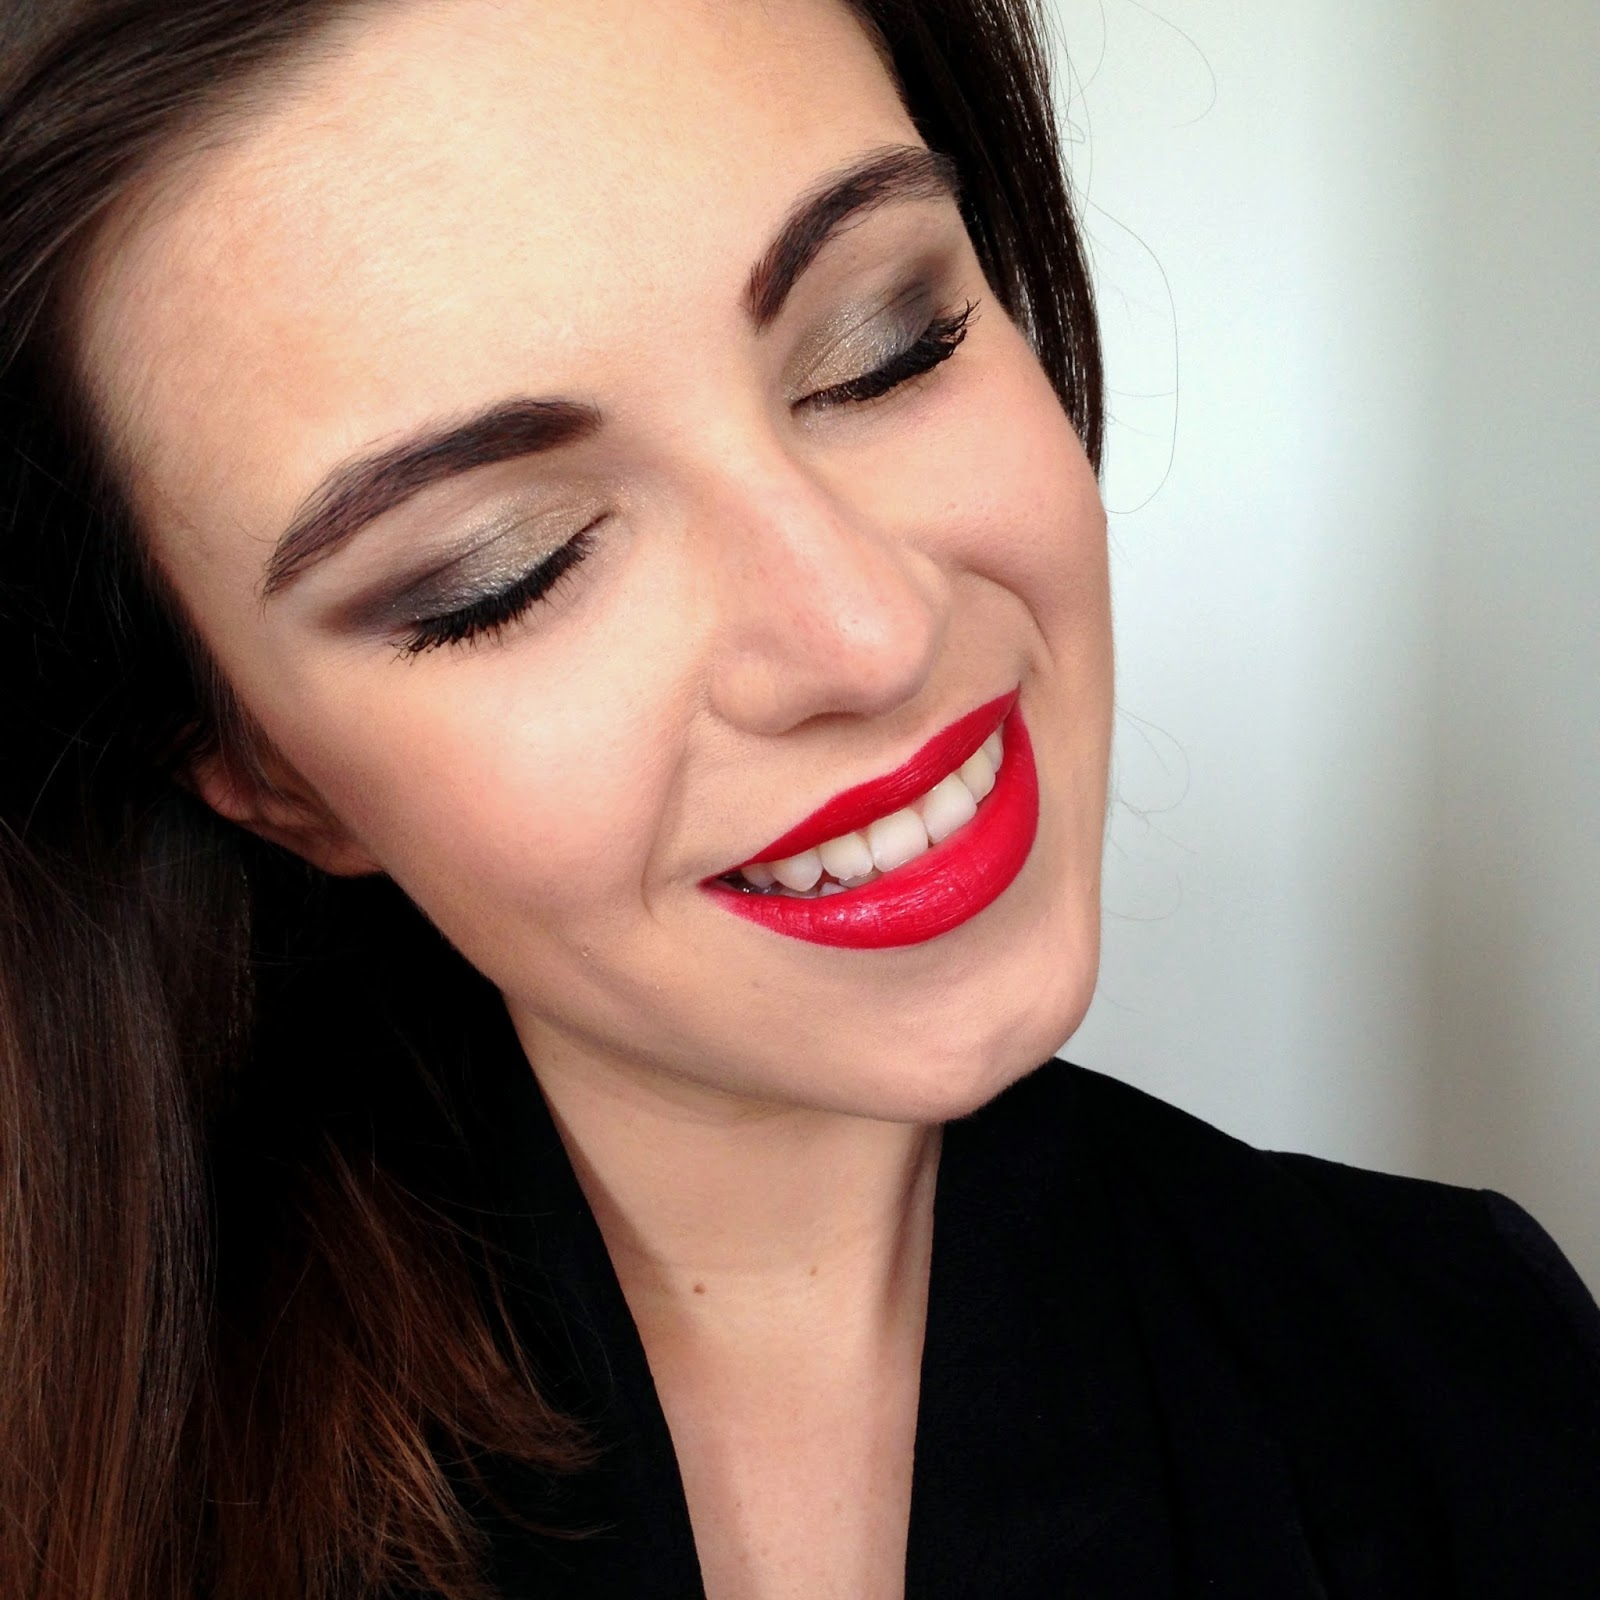 Fabuleux Maquillage de Noël : bouche rouge et smoky eye - The Mariette blog  IG68